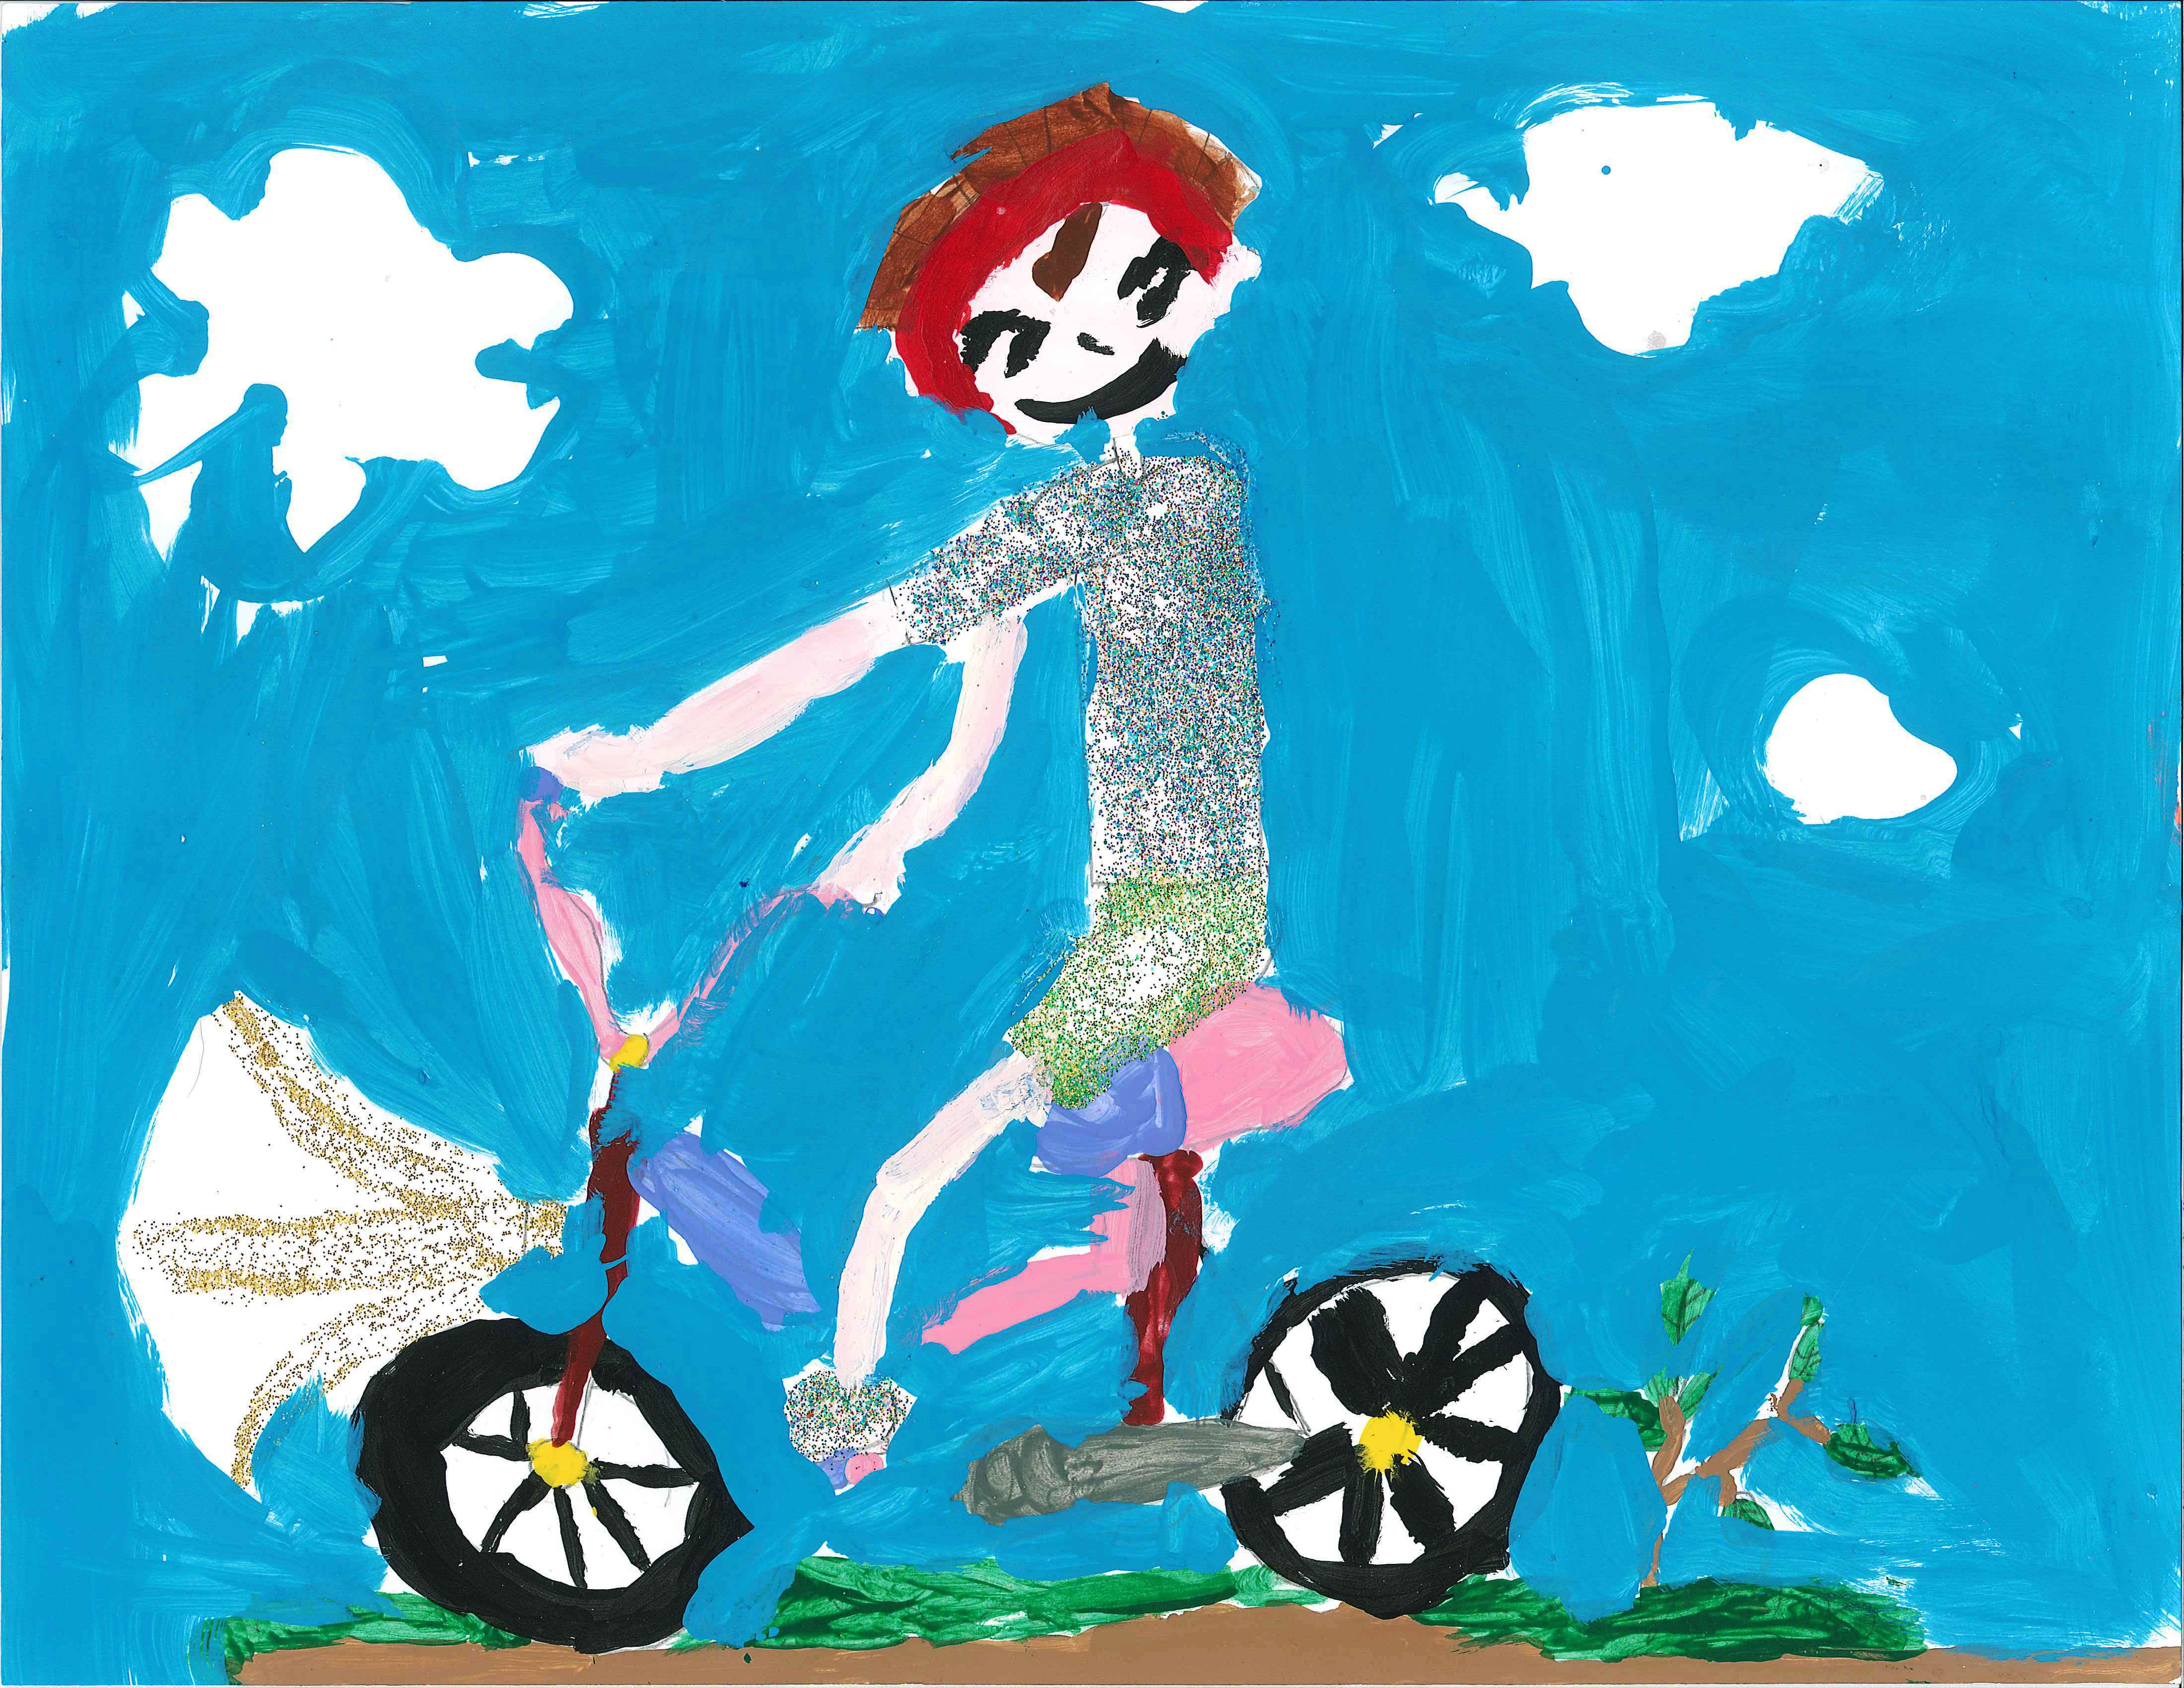 Painting of girl riding a bike with a light.